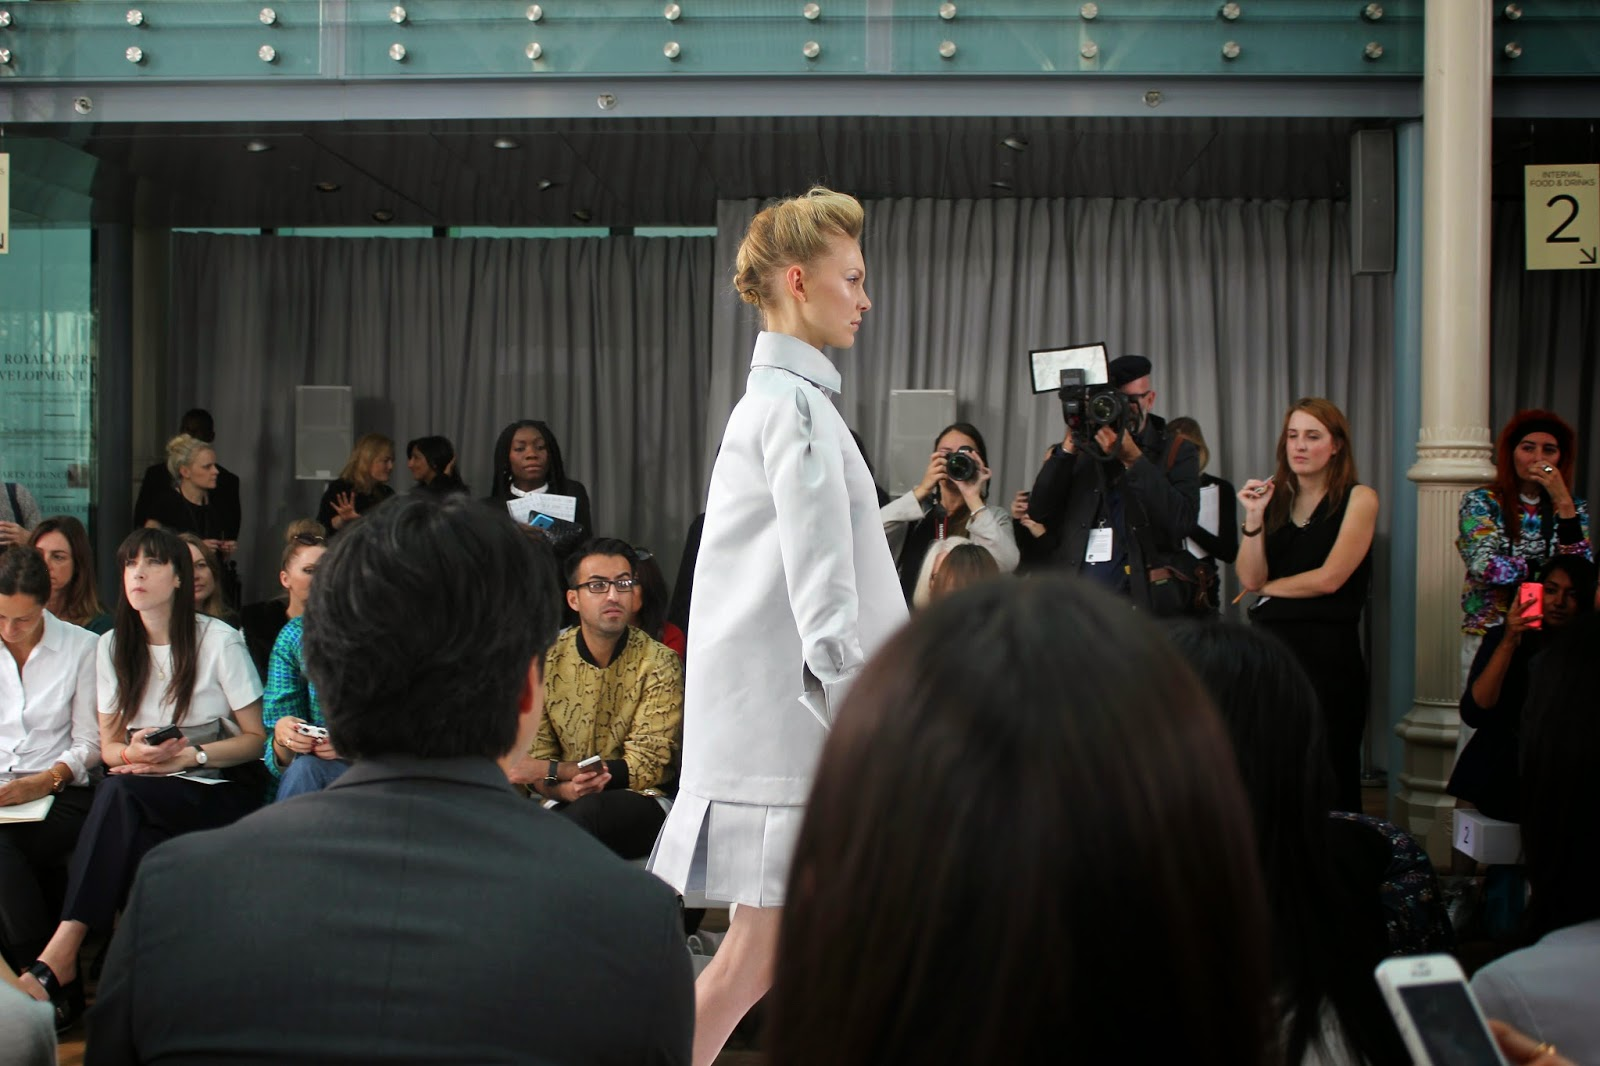 london-fashion-week-2014-lfw-DAKS-show-catwalk-spring-summer-2015-models-clothes-fashion-frow-royal-opera-house-dress-collar